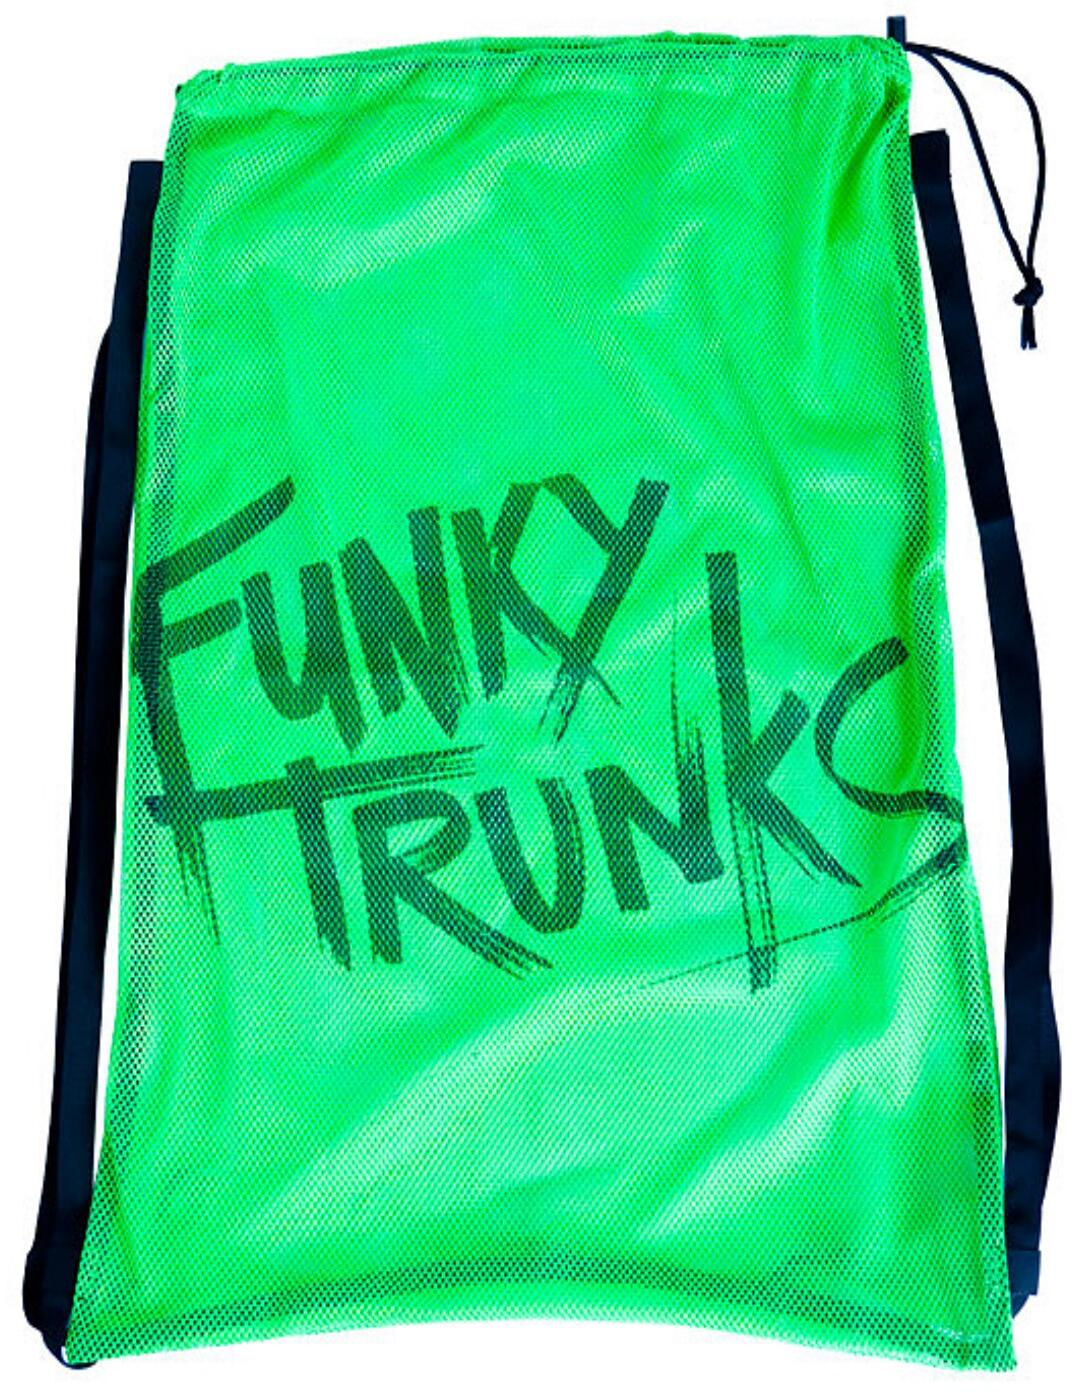 FTG010A00772 Funky Trunks Mesh Gear Bag - FTG010A00058 Still Brasil